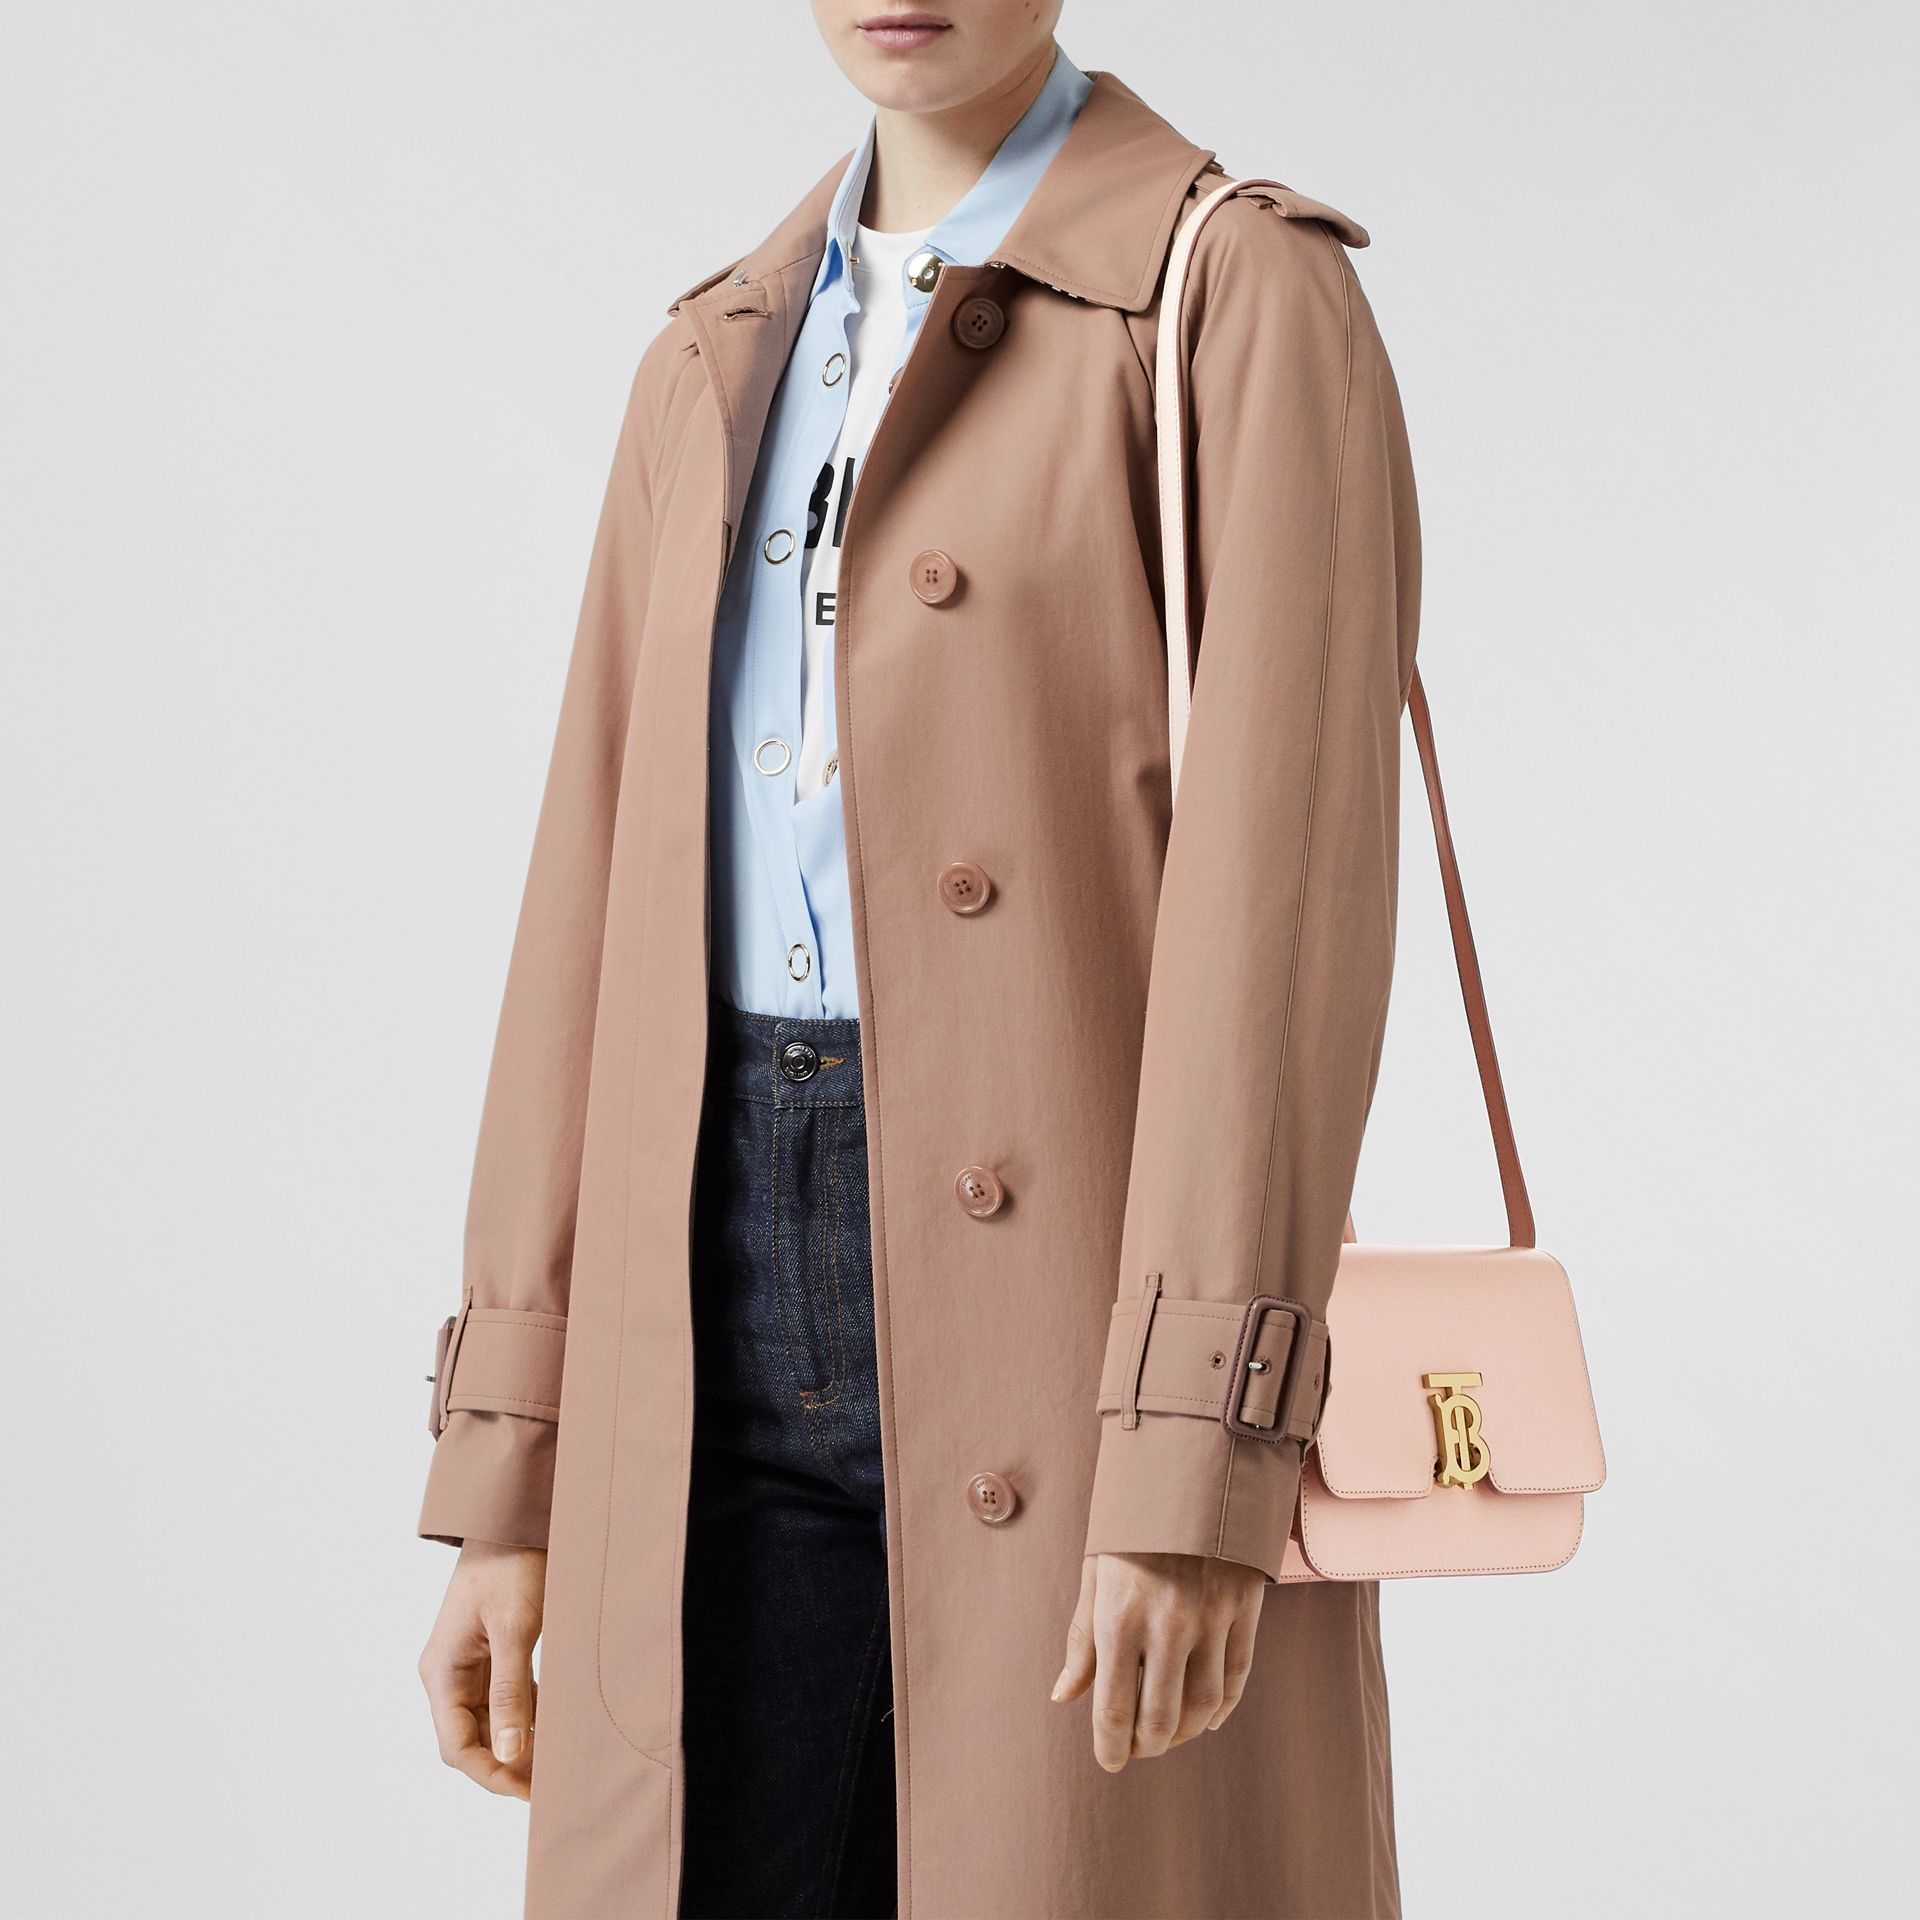 Petit sac TB en cuir (Beige Rose) - Femme | Burberry - photo de la galerie 2